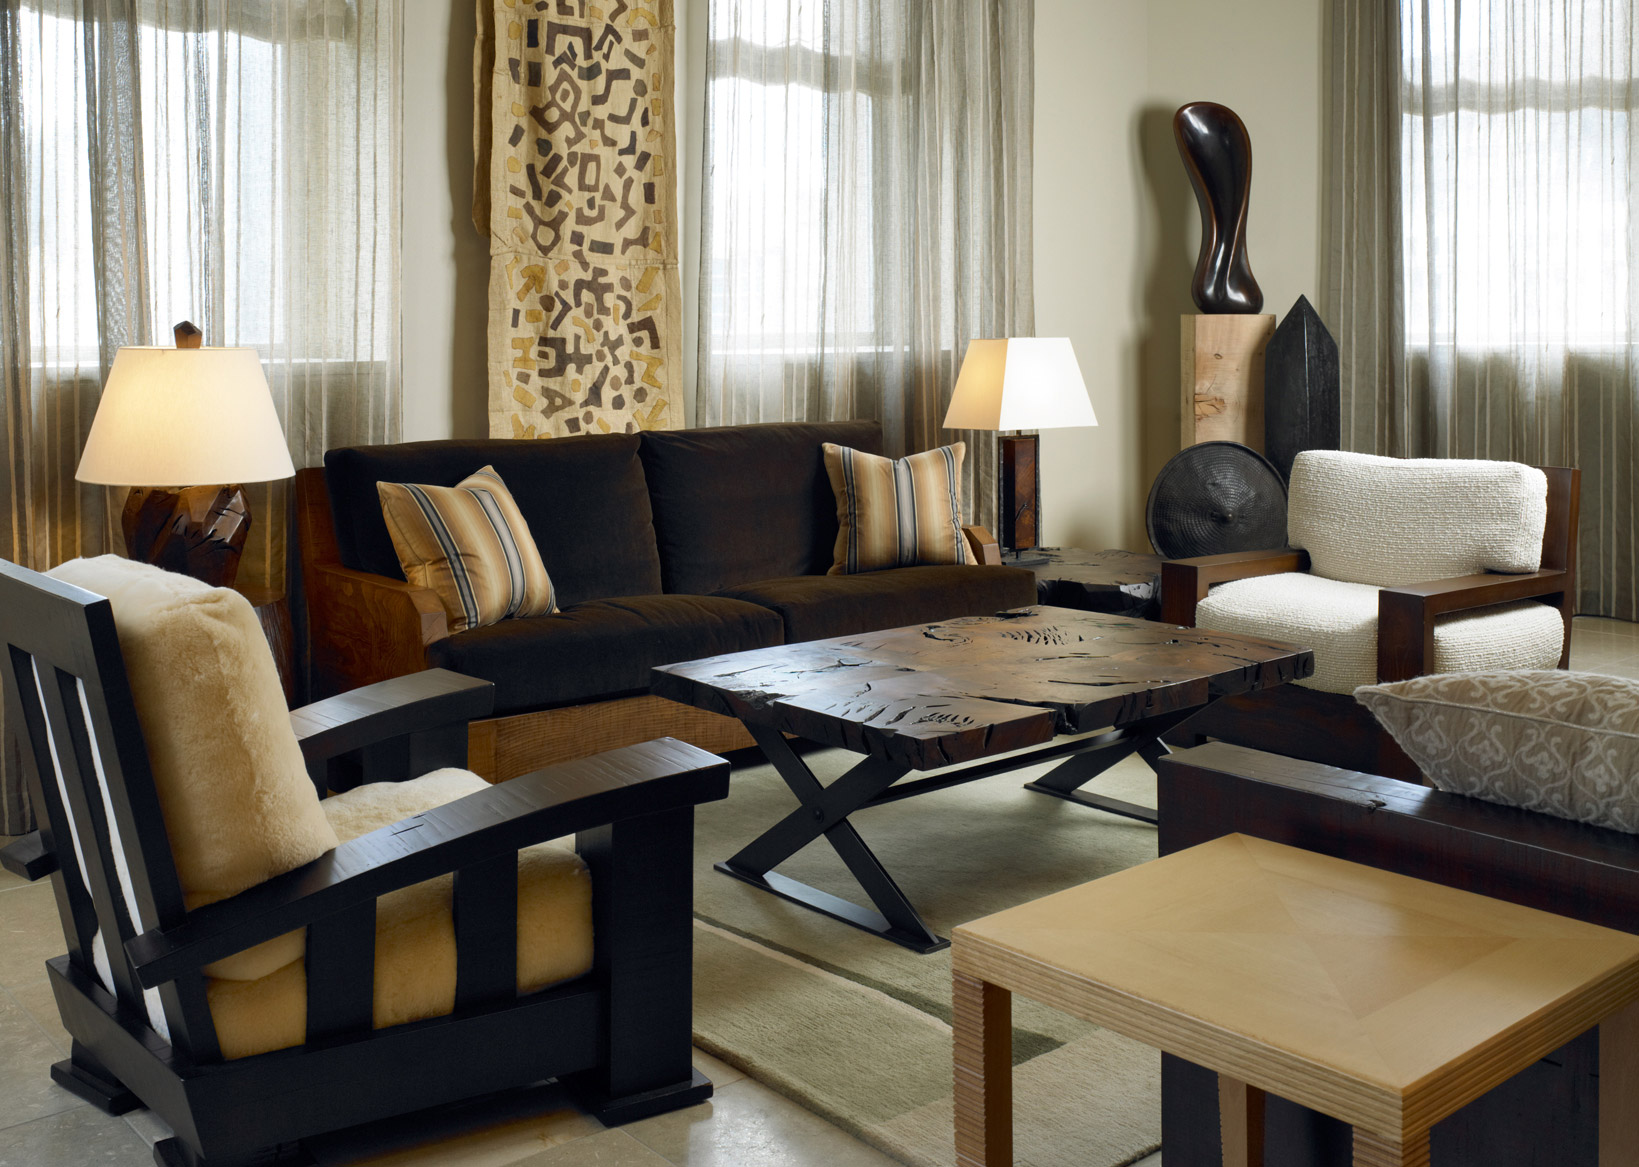 Fall In New York Wallpaper Best Interior Design The Work And Legacy Of Christian Liaigre